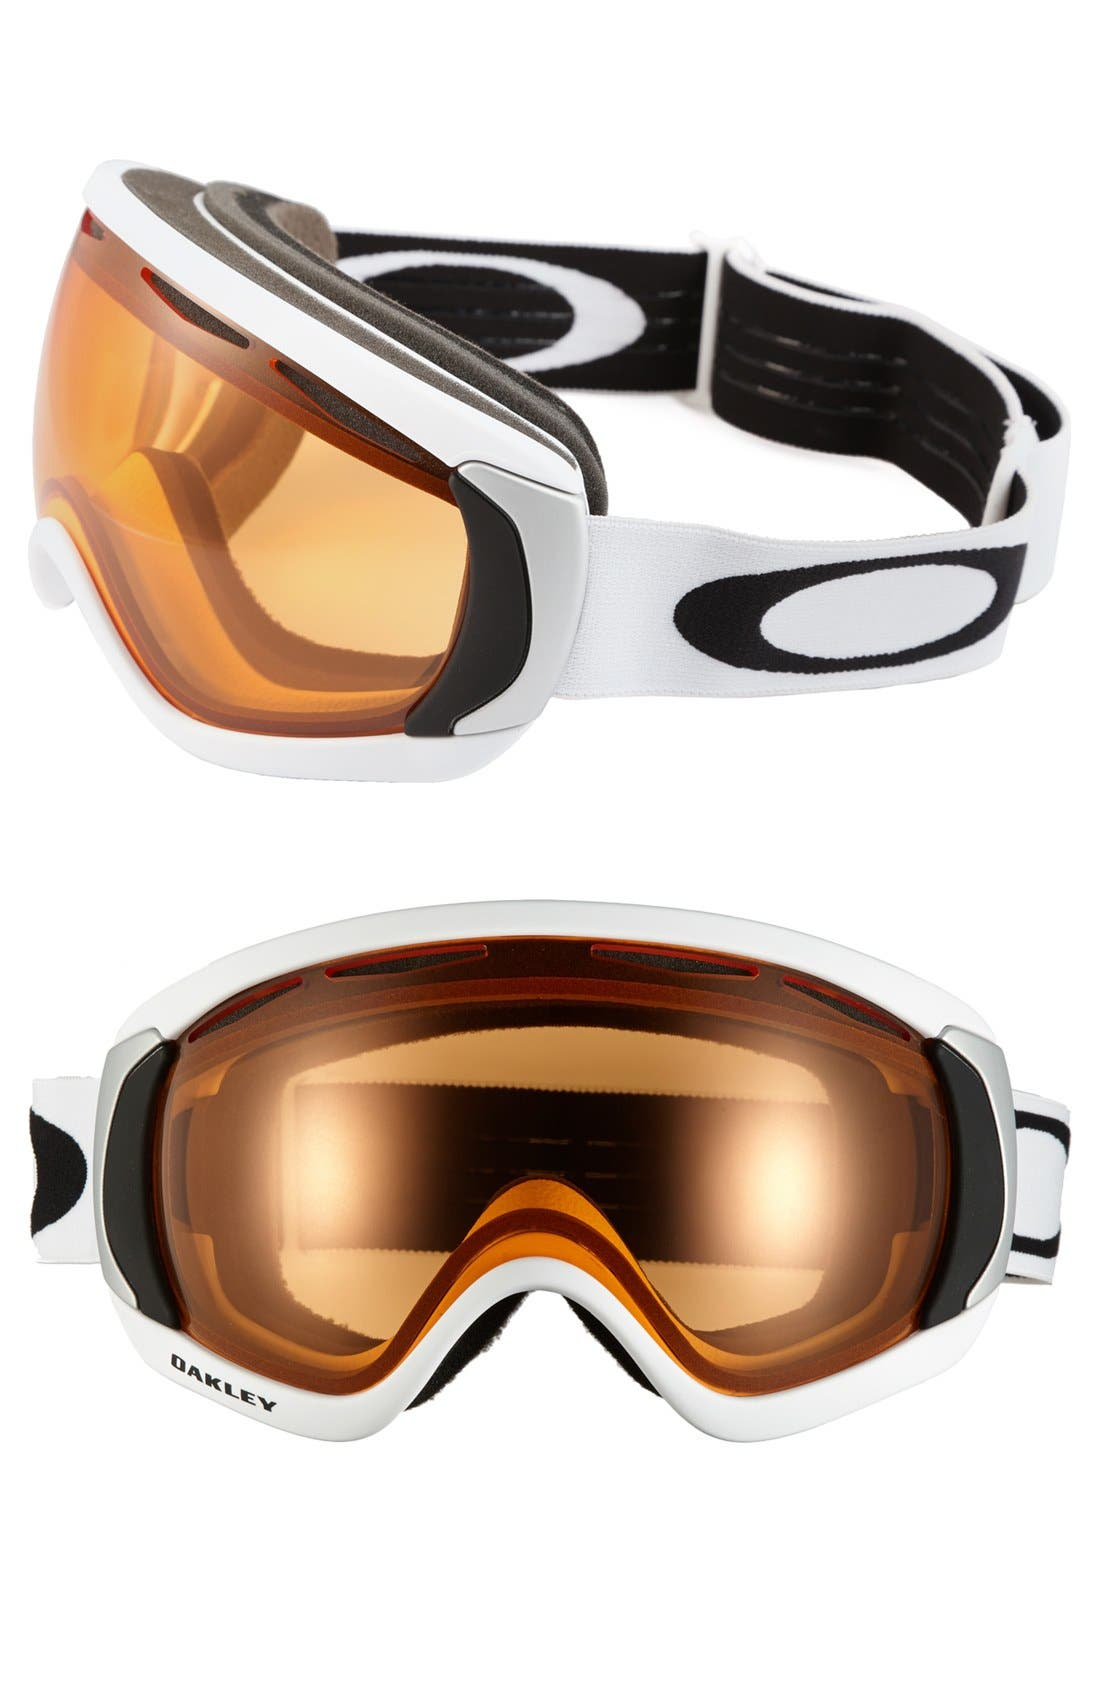 Main Image - Oakley 'Canopy' Snow Goggles